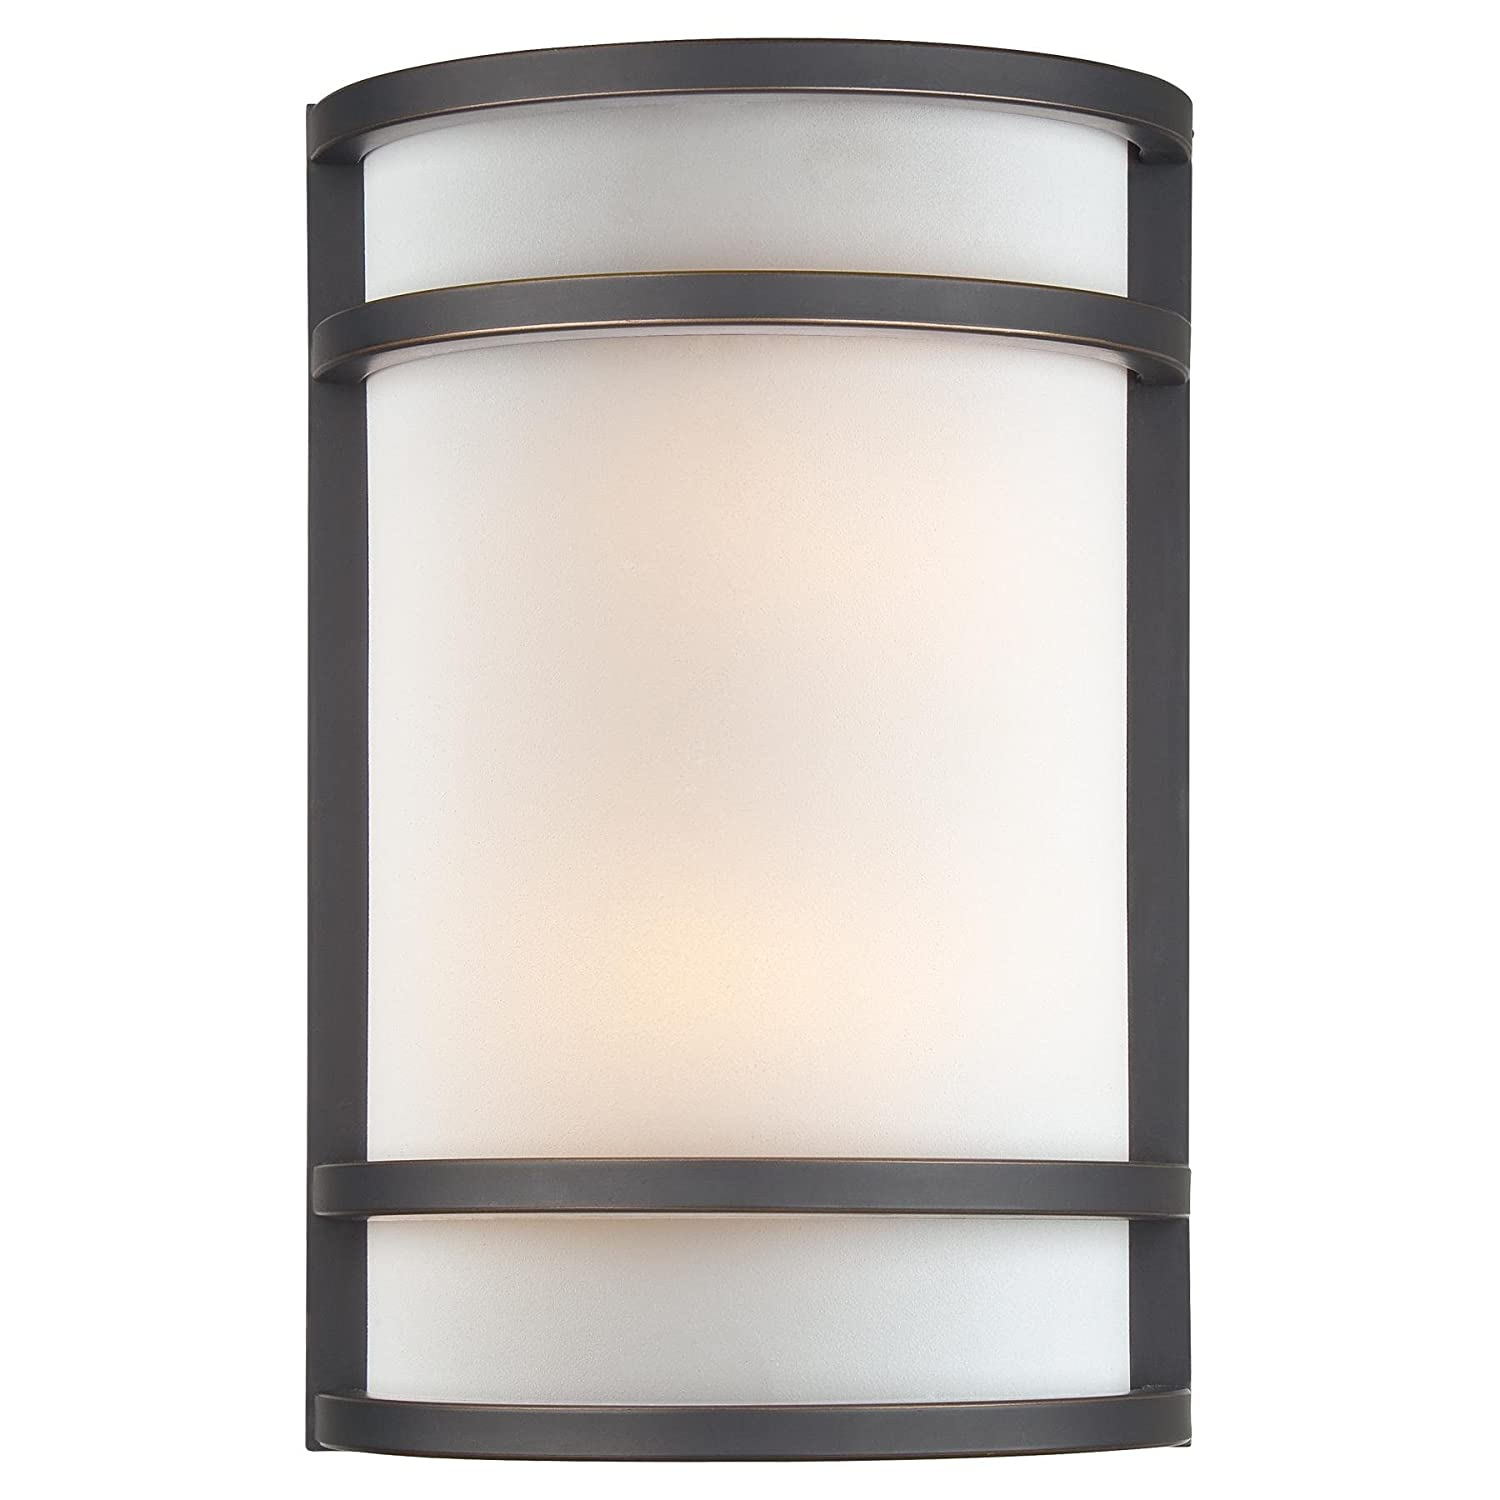 Minka lavery wall sconce lighting 345 37b glass damp bath vanity minka lavery wall sconce lighting 345 37b glass damp bath vanity fixture 2 light 120 watts bronze amazon aloadofball Image collections